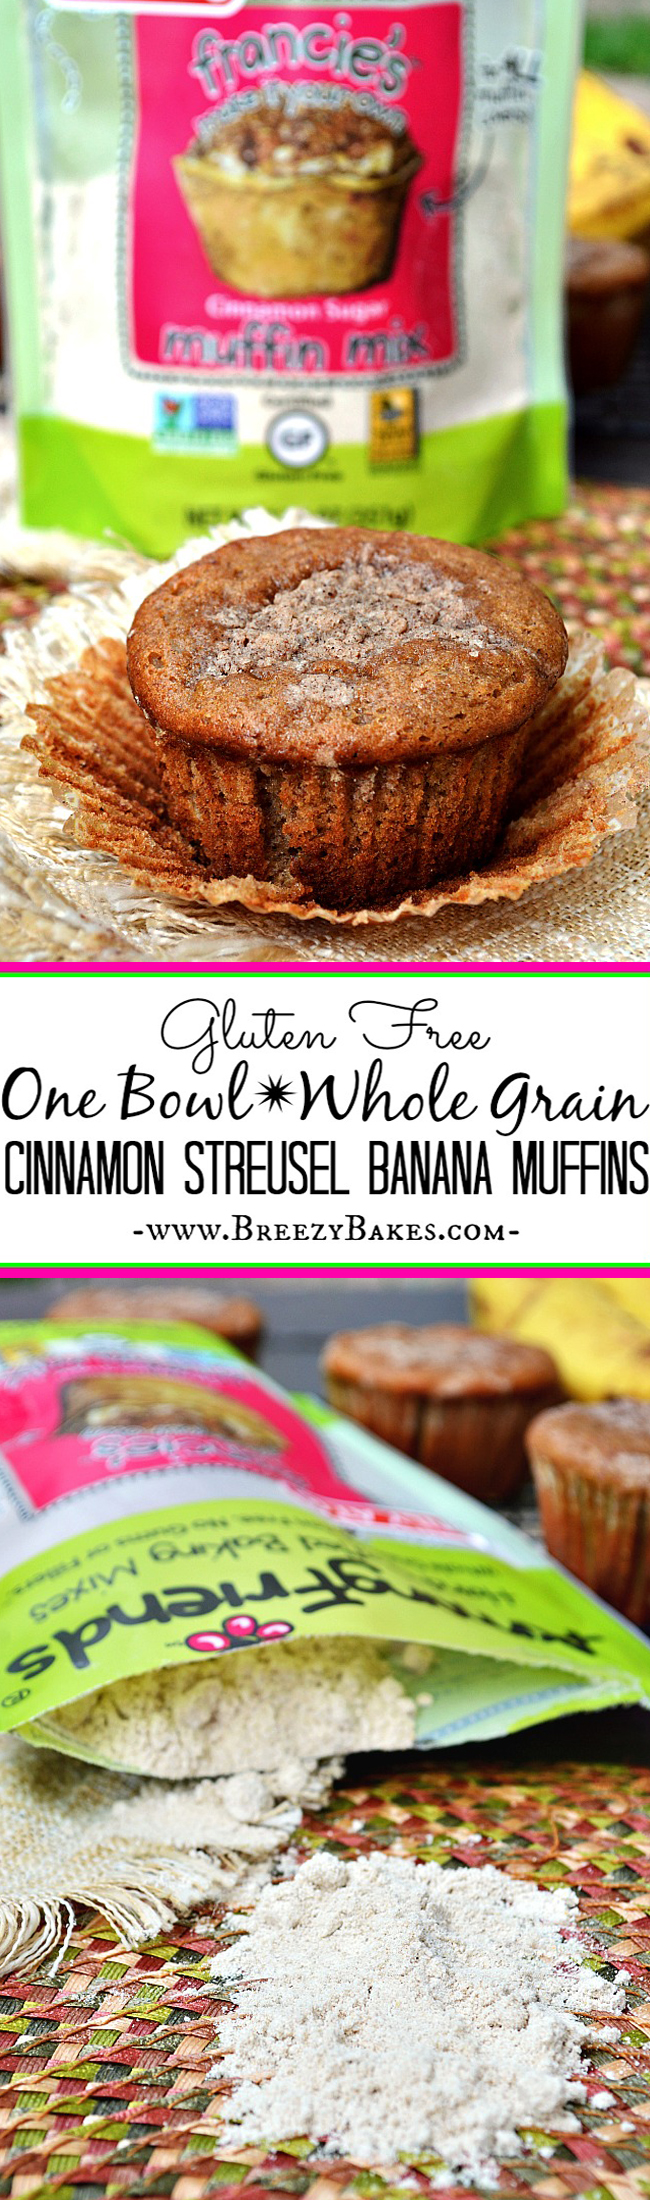 For a quick, no fuss one bowl muffin mix, try these Gluten Free Among Friends Cinnamon Banana Muffins. They are whole grain and contain no gums or fillers, which makes eating them that much more enjoyable!